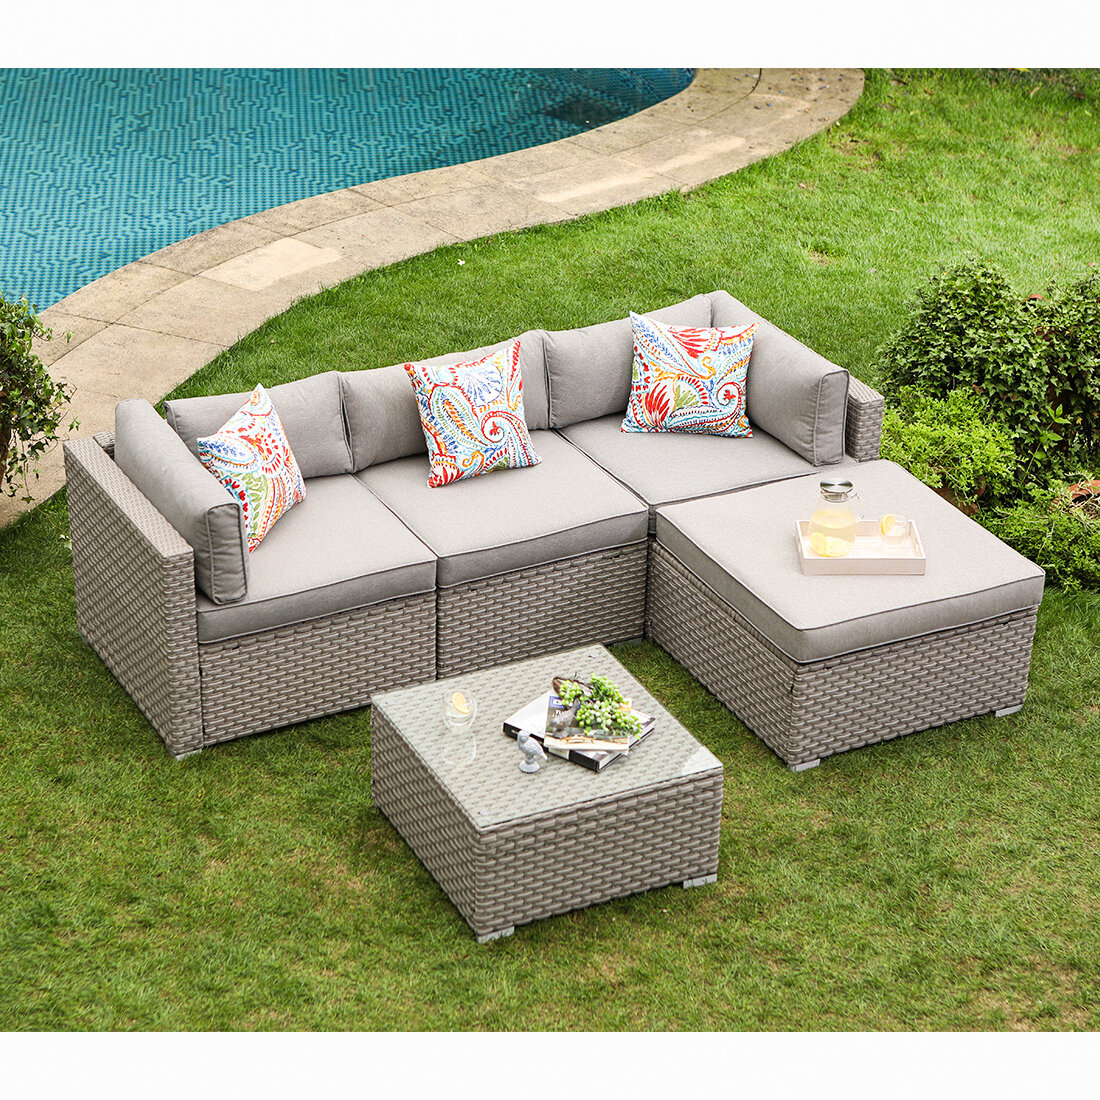 5 Piece Outdoor Furniture Set Warm Gray